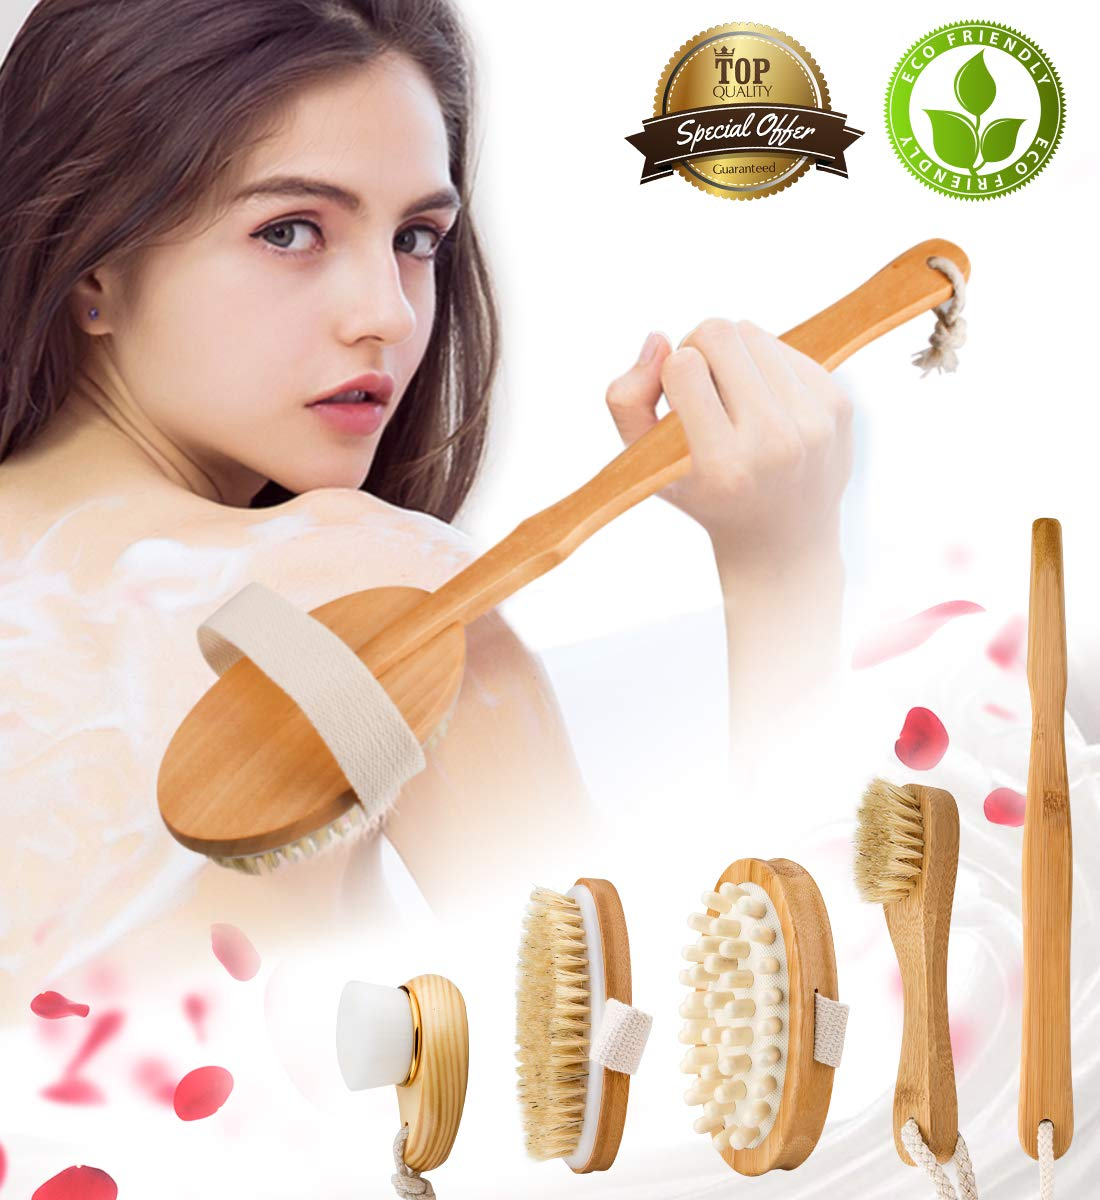 Premium Dry Brushing Body Brush Set for Lymphatic Drainage and Cellulite Treatment, Natural Boar Bristle Body Brush, Long Handle Body Brush, Face Cleansing Brush, For A Glowing Skin, 5 Pack